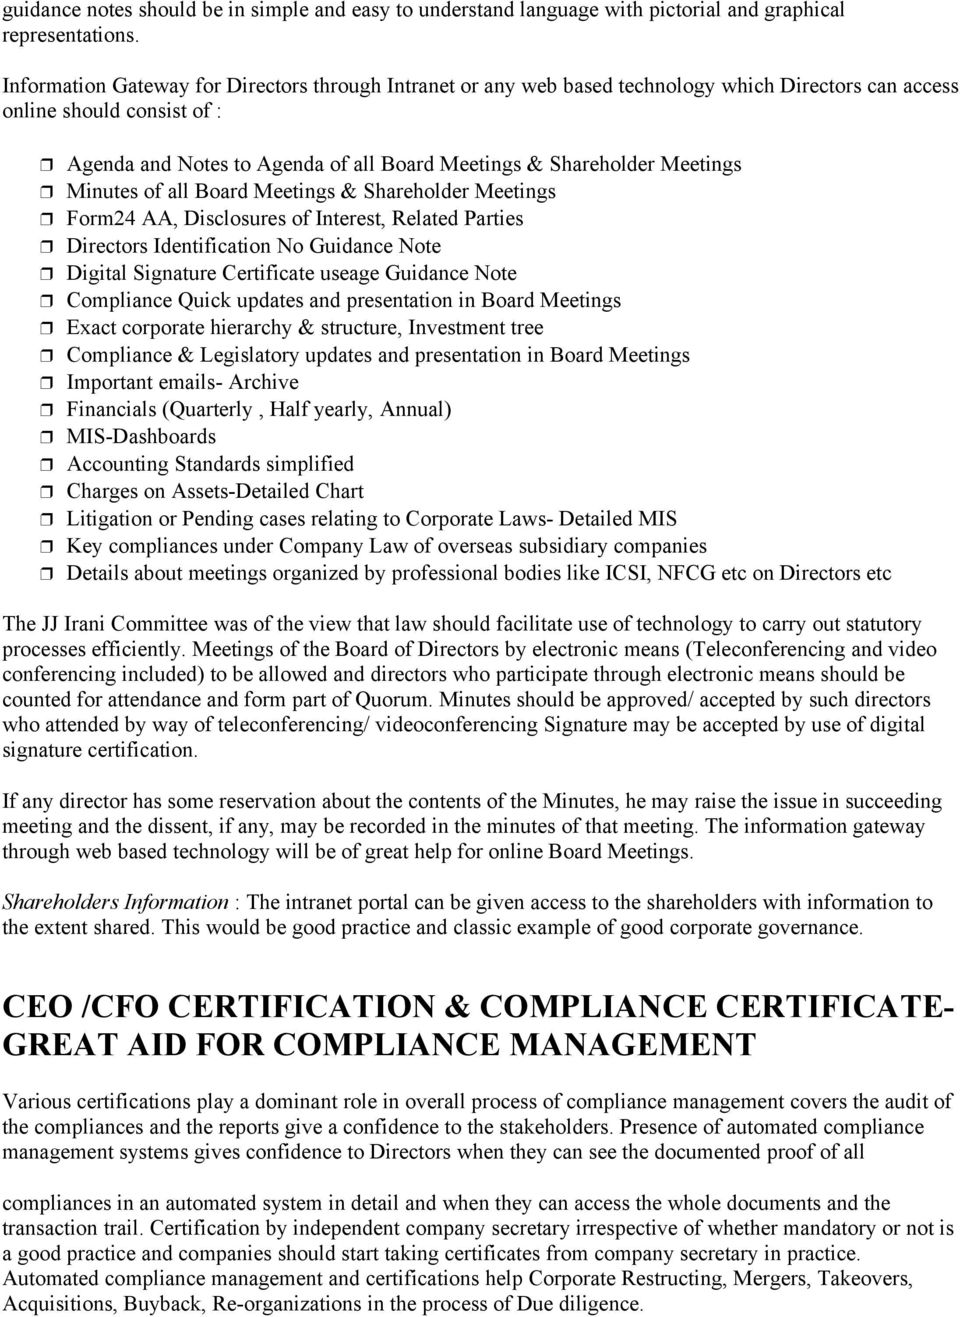 Compliance Management Of Company Law Compliances Approach And